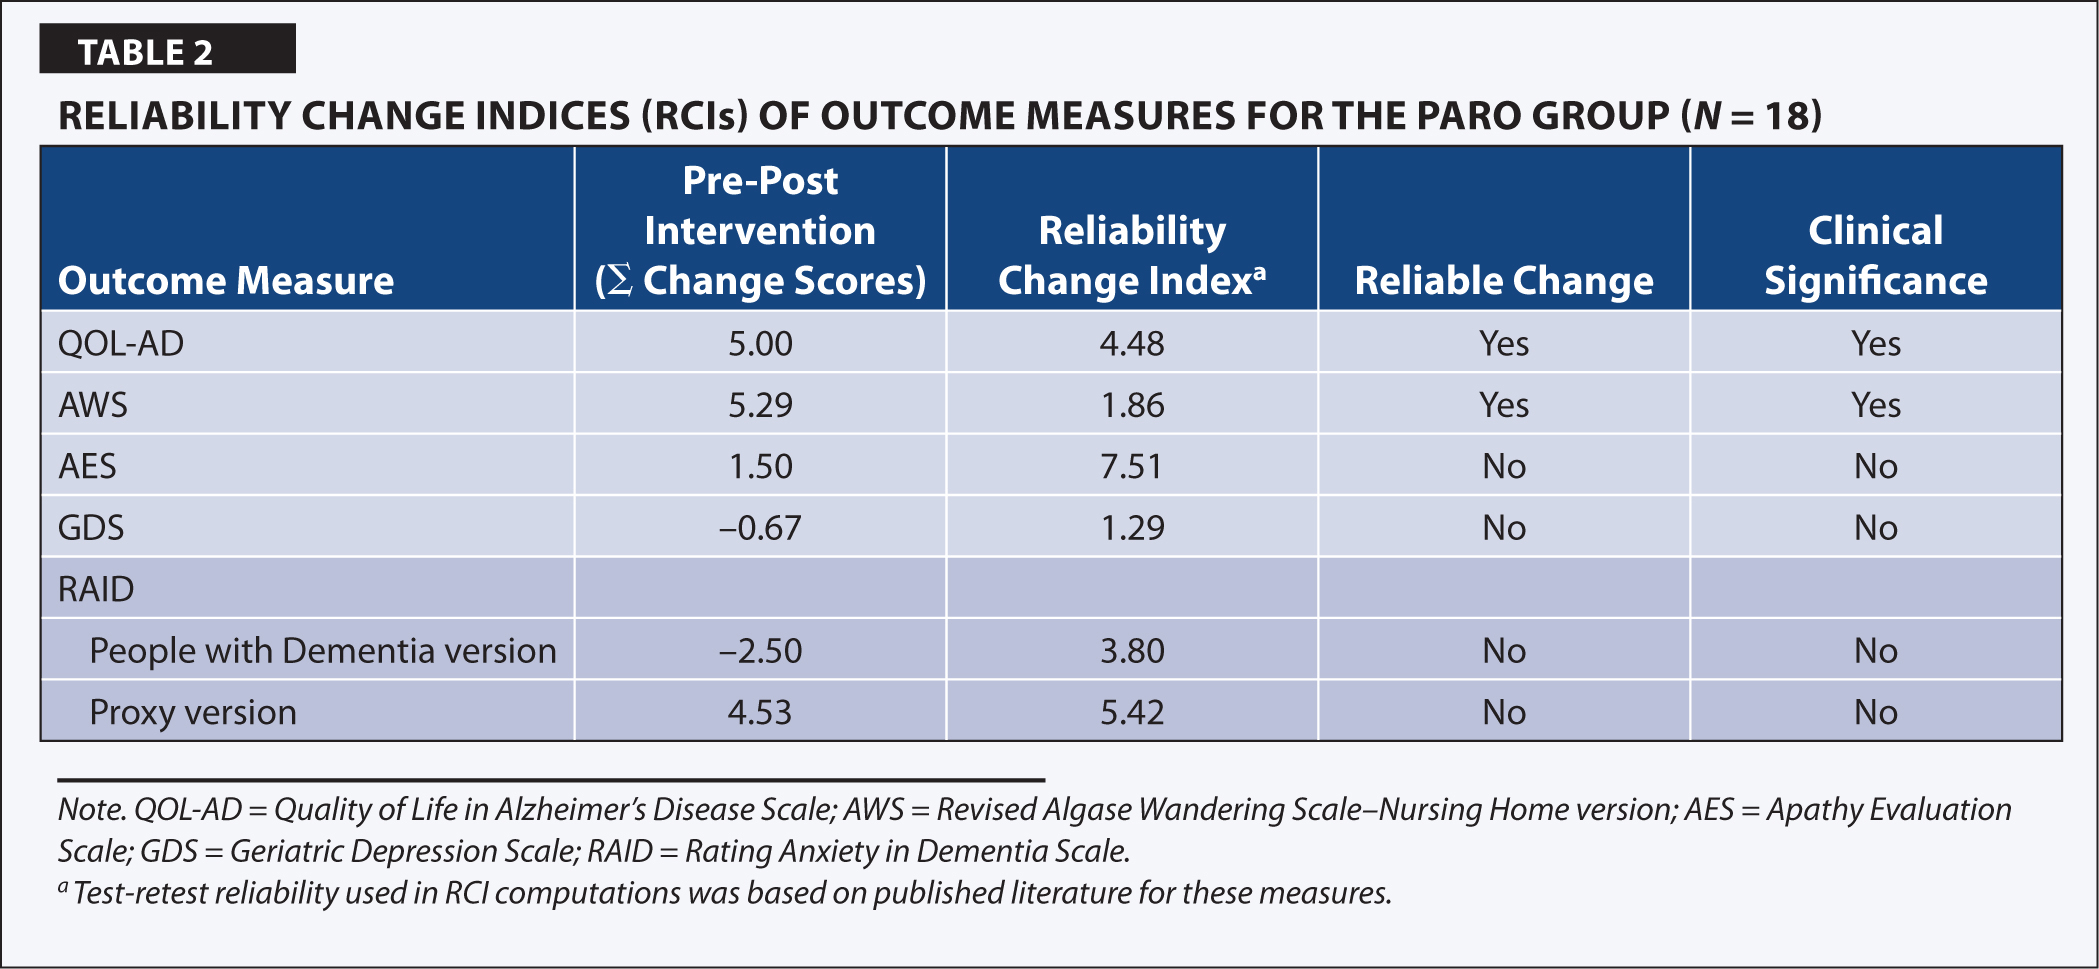 Reliability Change Indices (RCIs) of Outcome Measures for the Paro Group (N = 18)